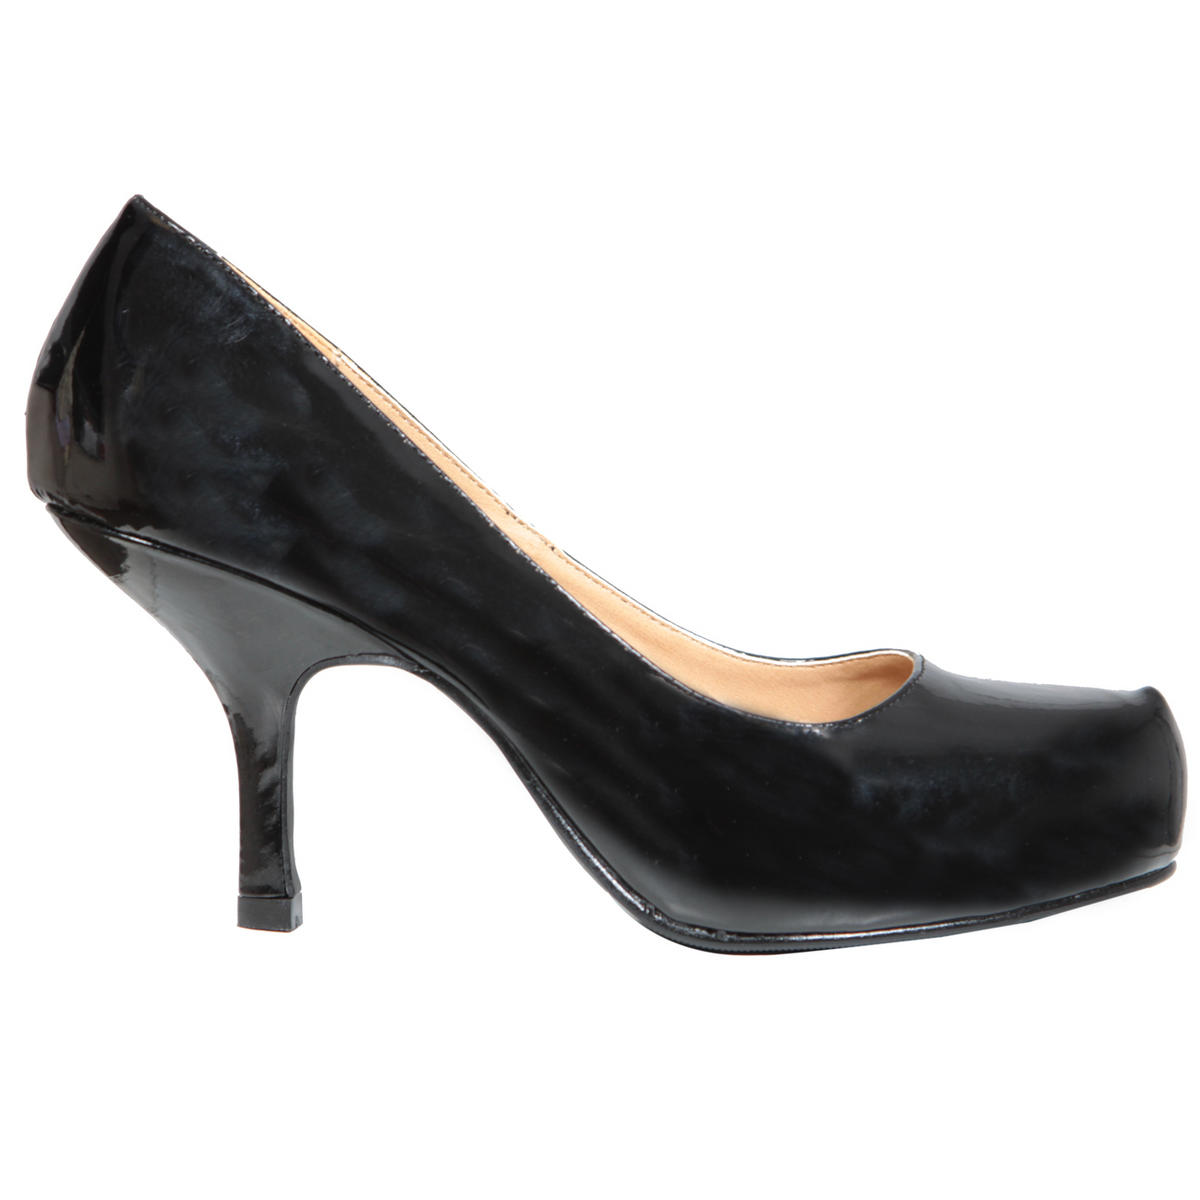 Black Patent Kitten Heel Shoe Preview